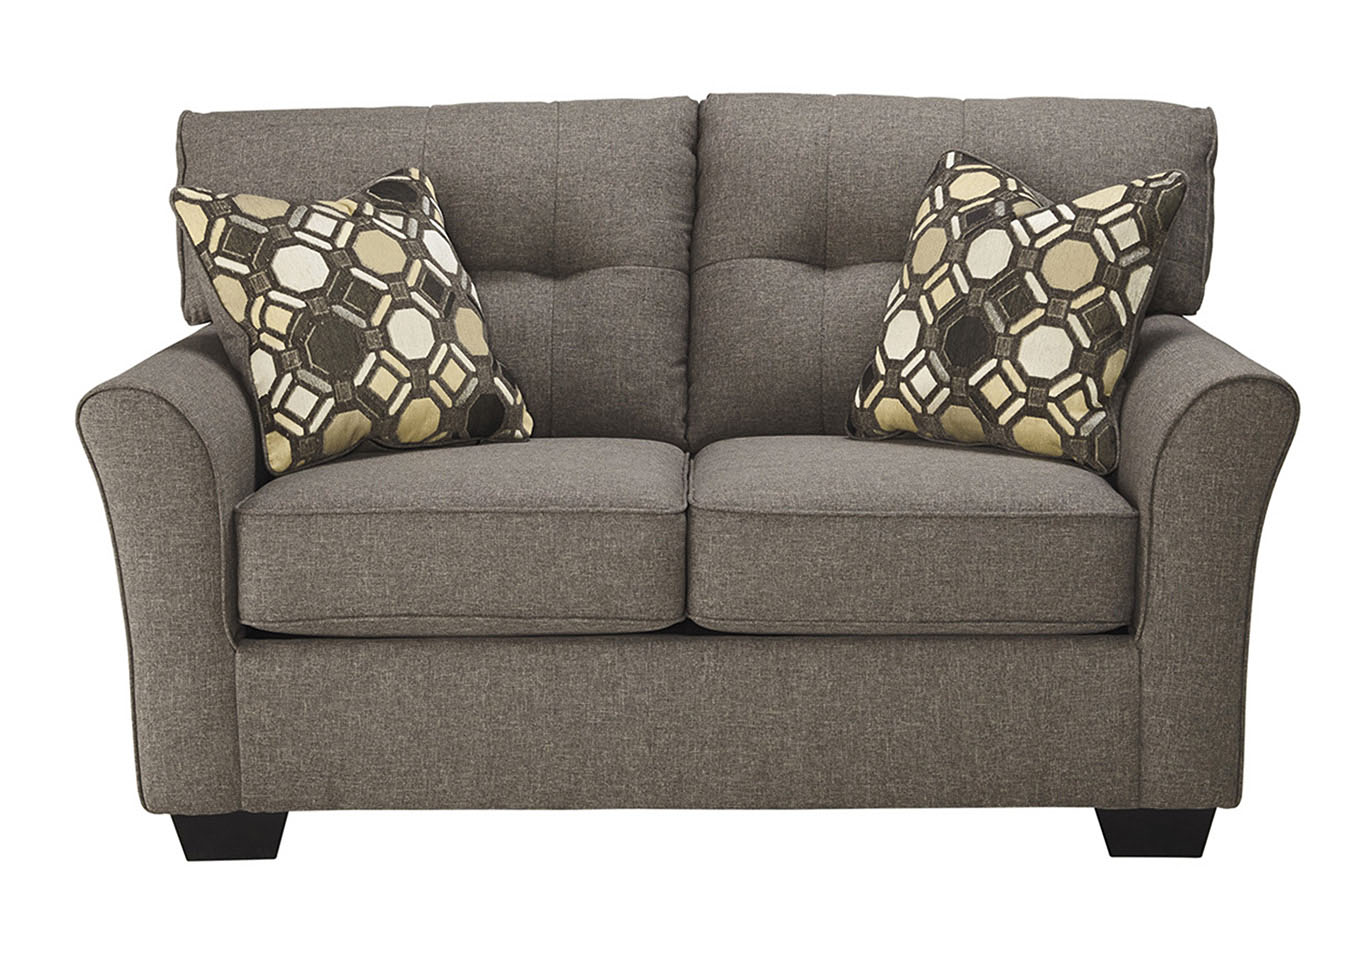 Tibbee Slate Loveseat,Signature Design By Ashley